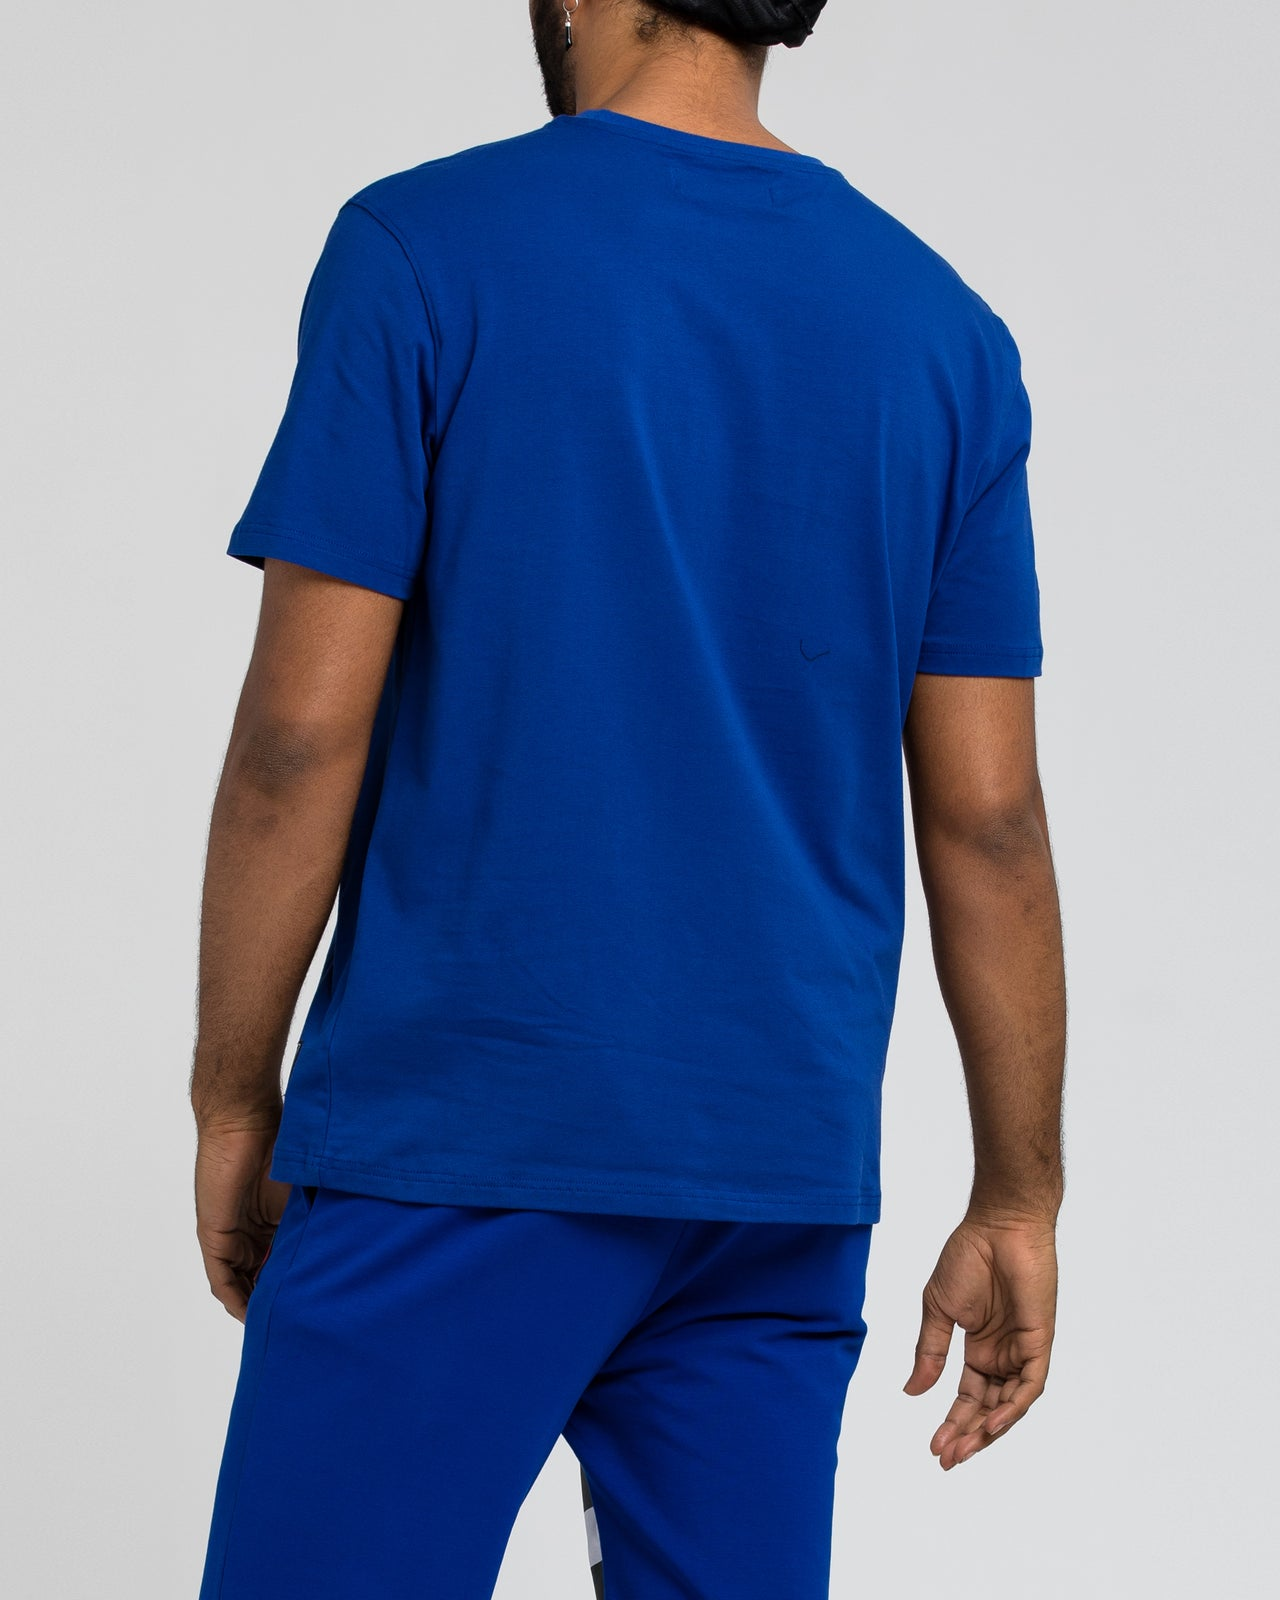 Black Pyramid Tee - Color: Blue